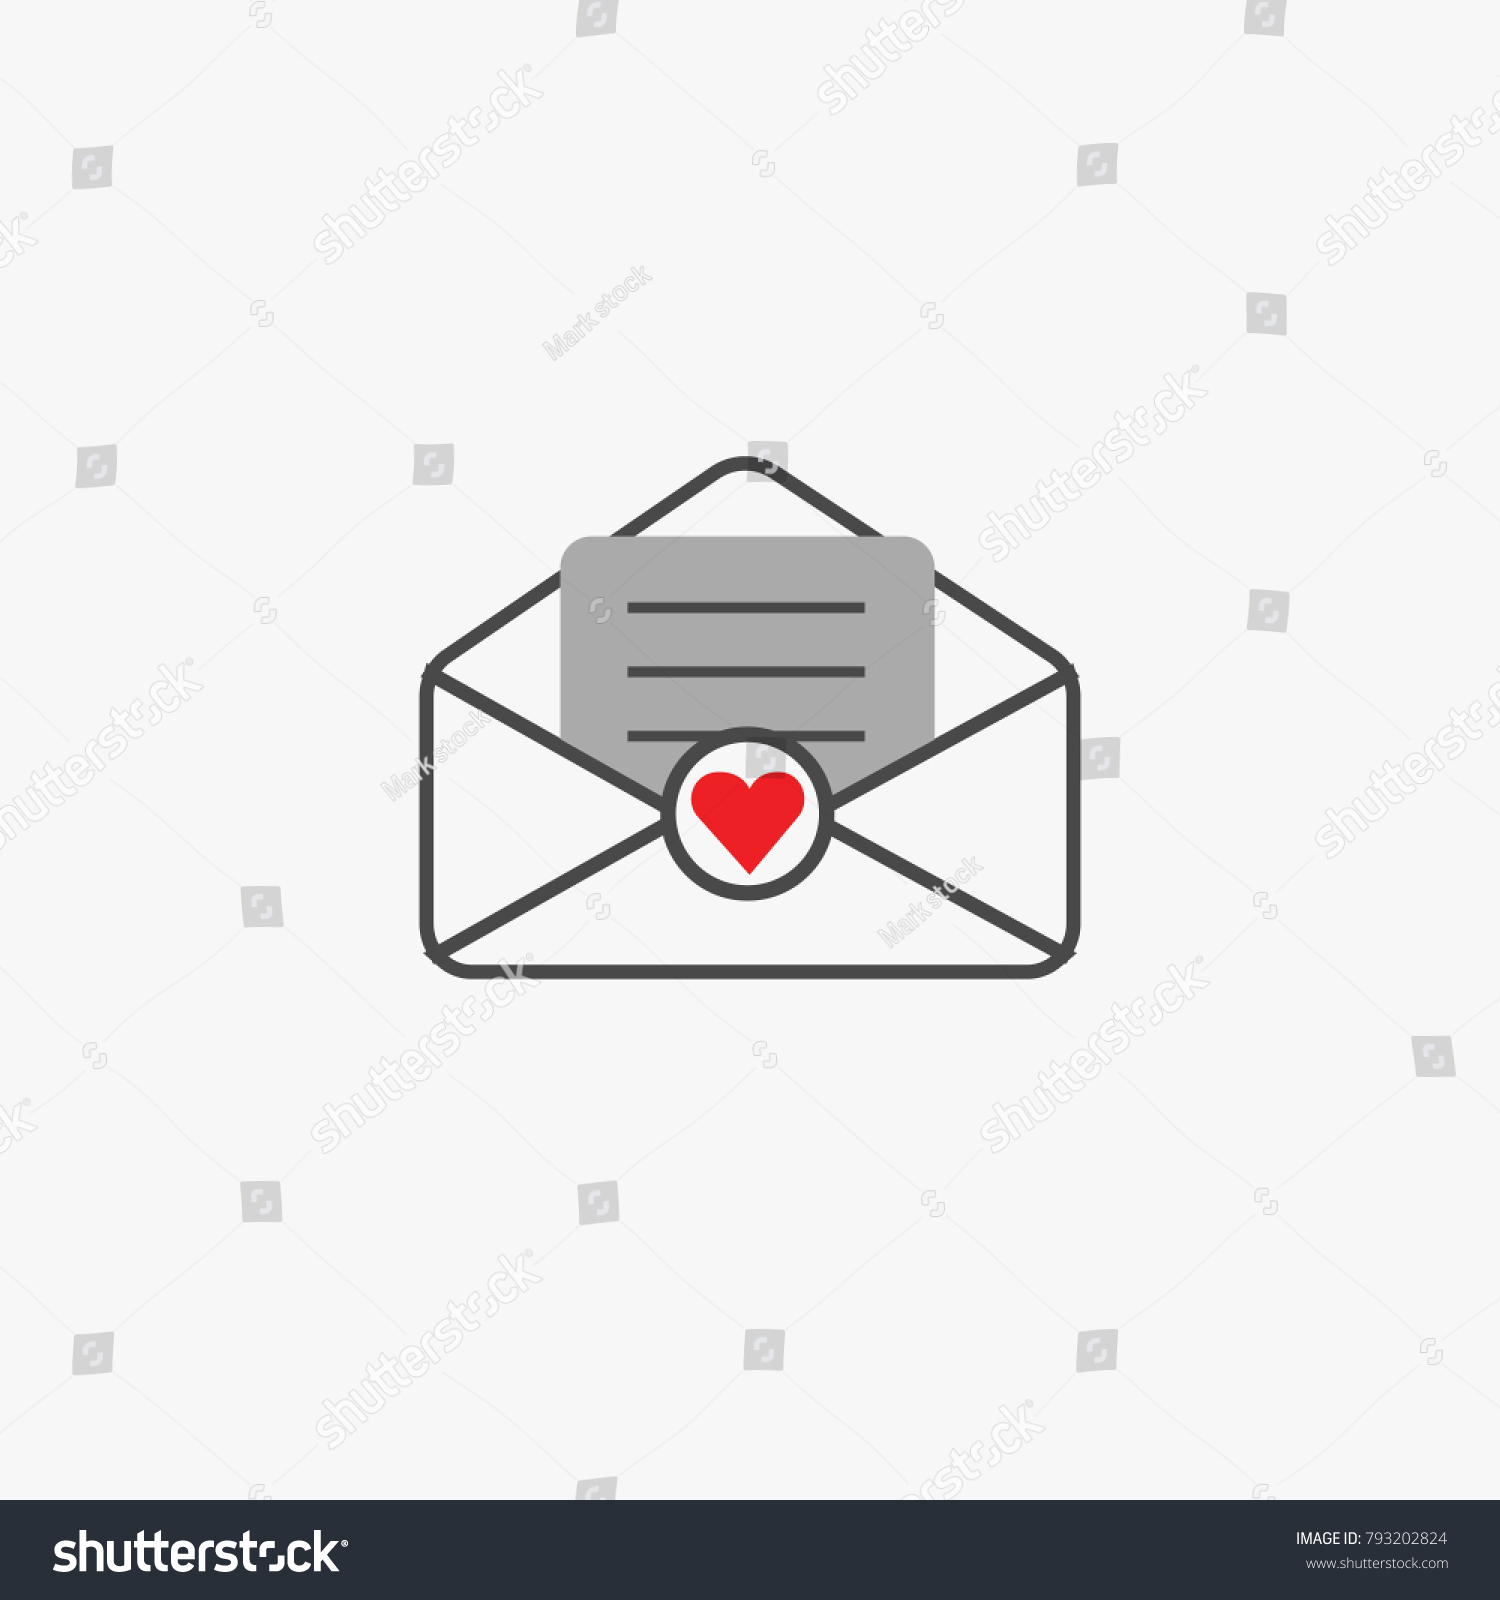 Love letter envelope open heart symbol stock vector 793202824 love letter envelope open with heart symbol vector icon for messages email sms social media websites buycottarizona Gallery